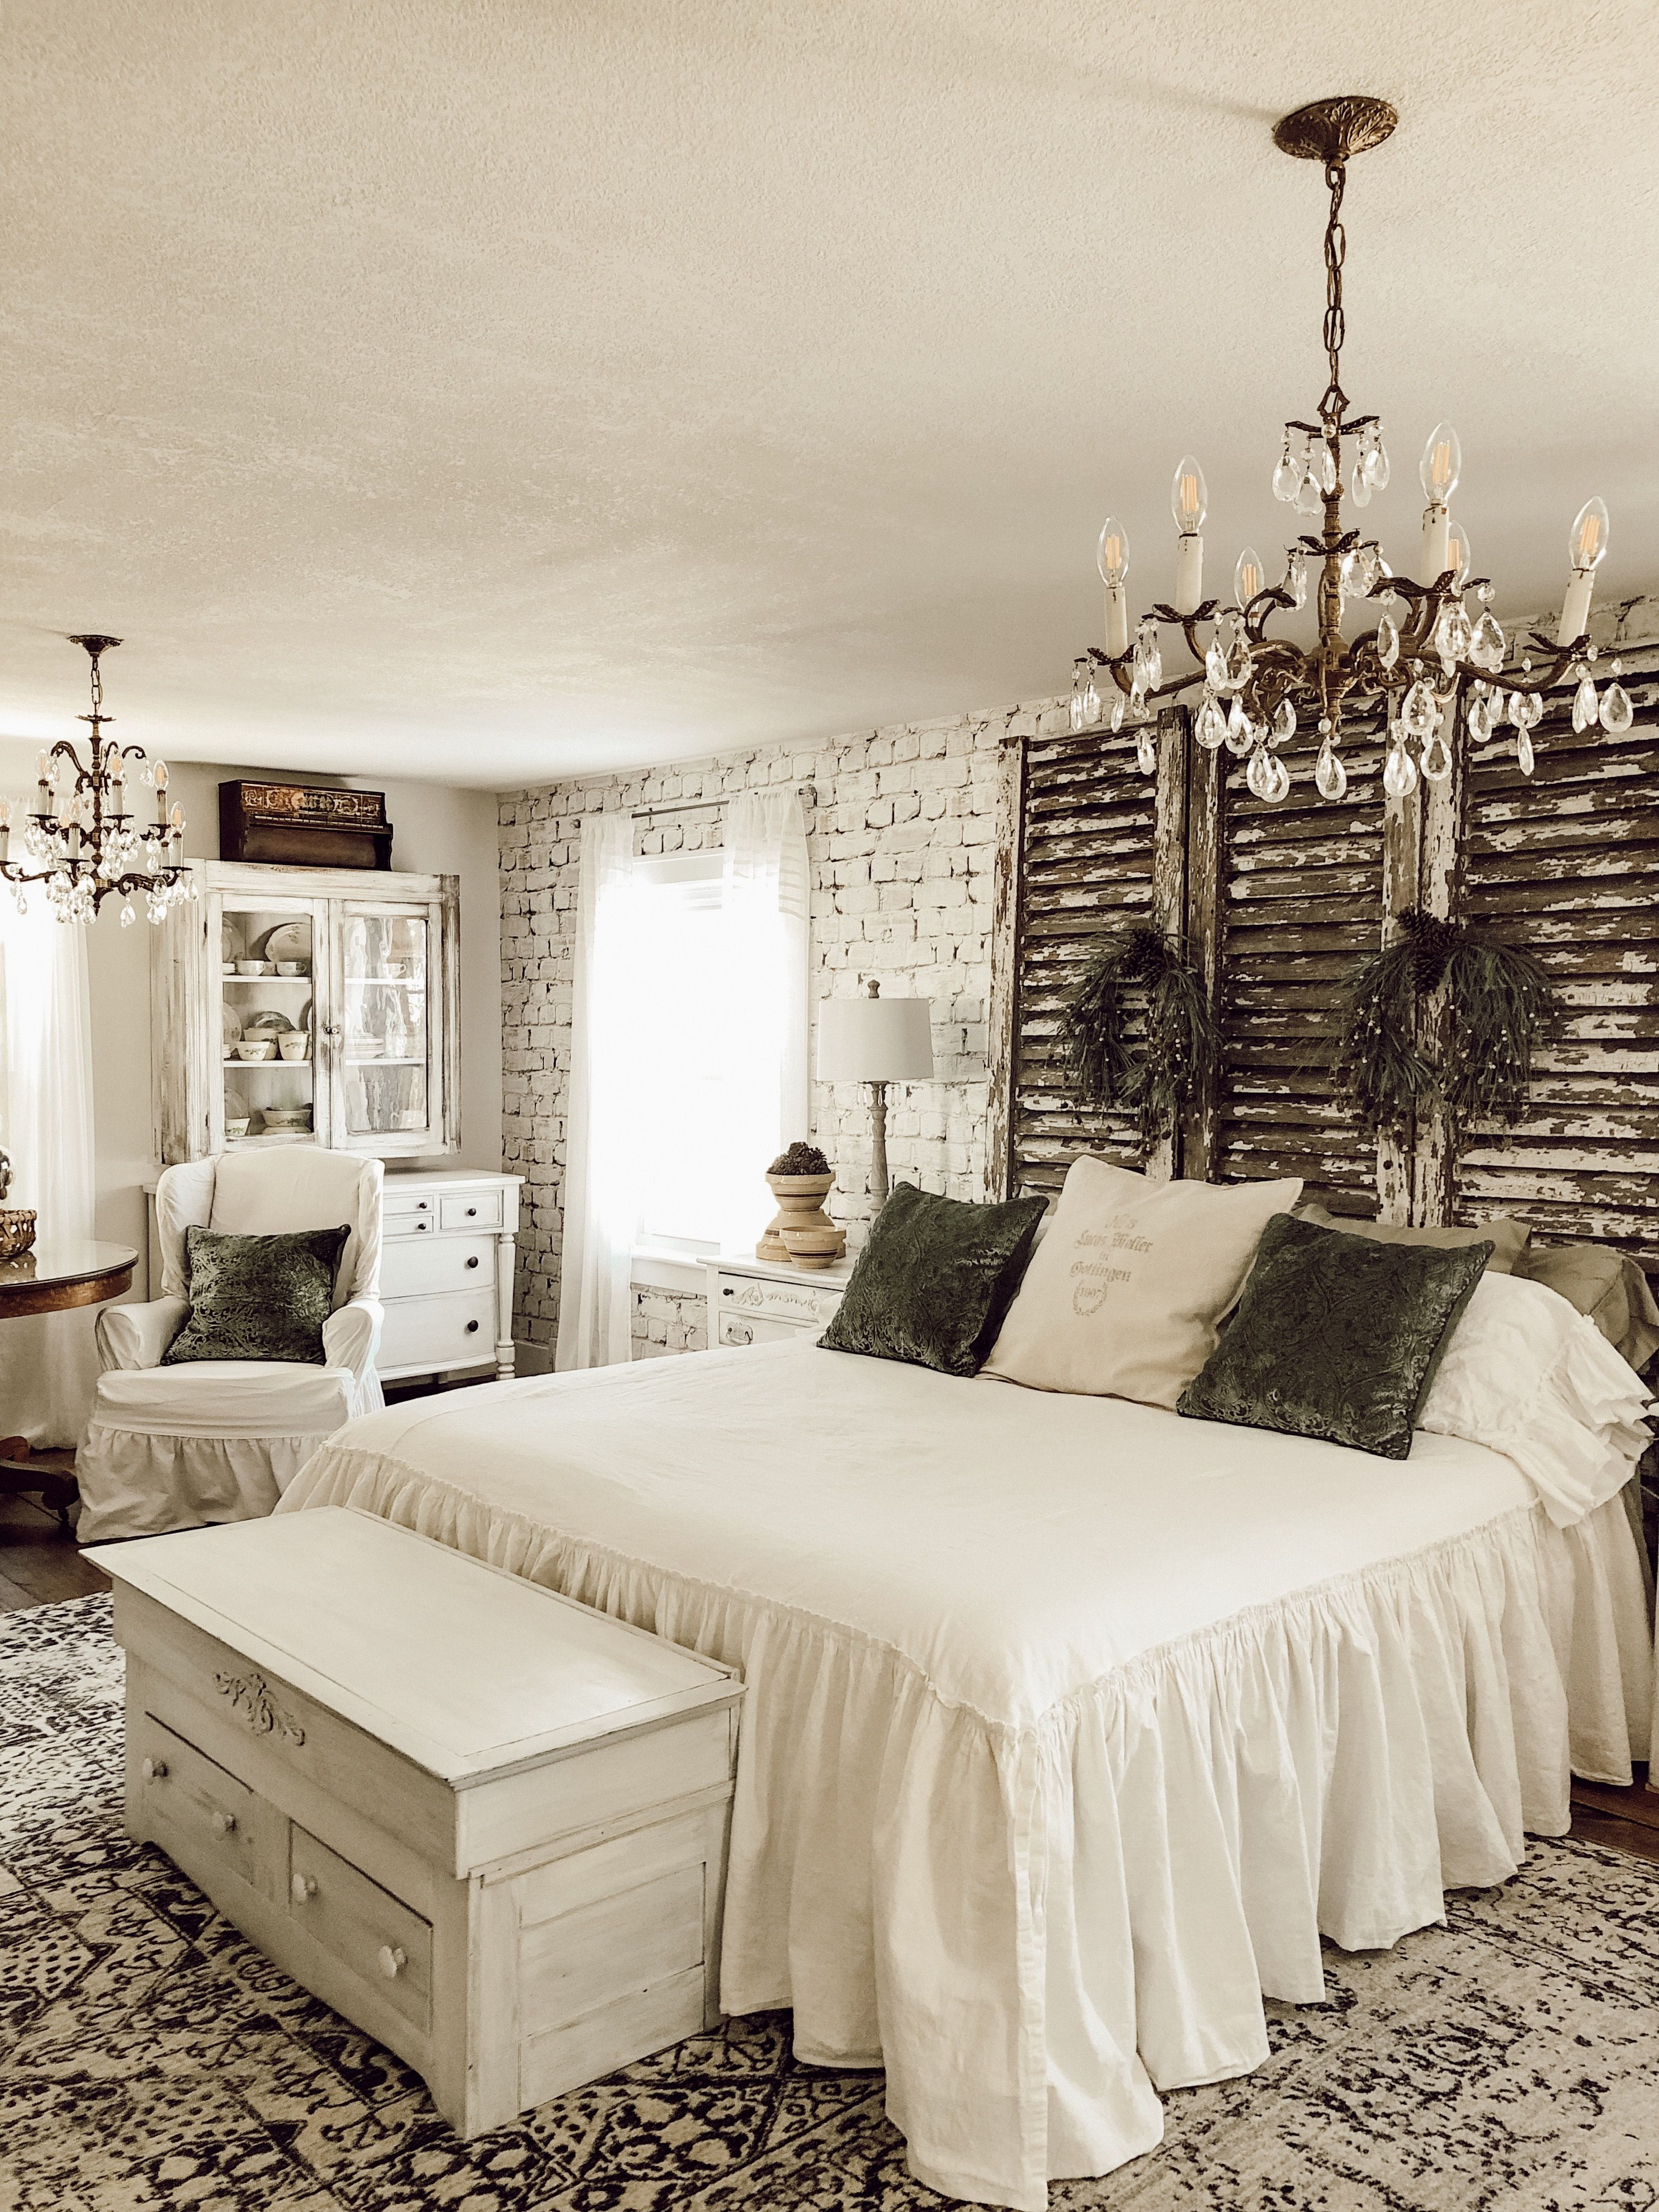 Decorating With Vintage Items In The Master Bedroom Meuble